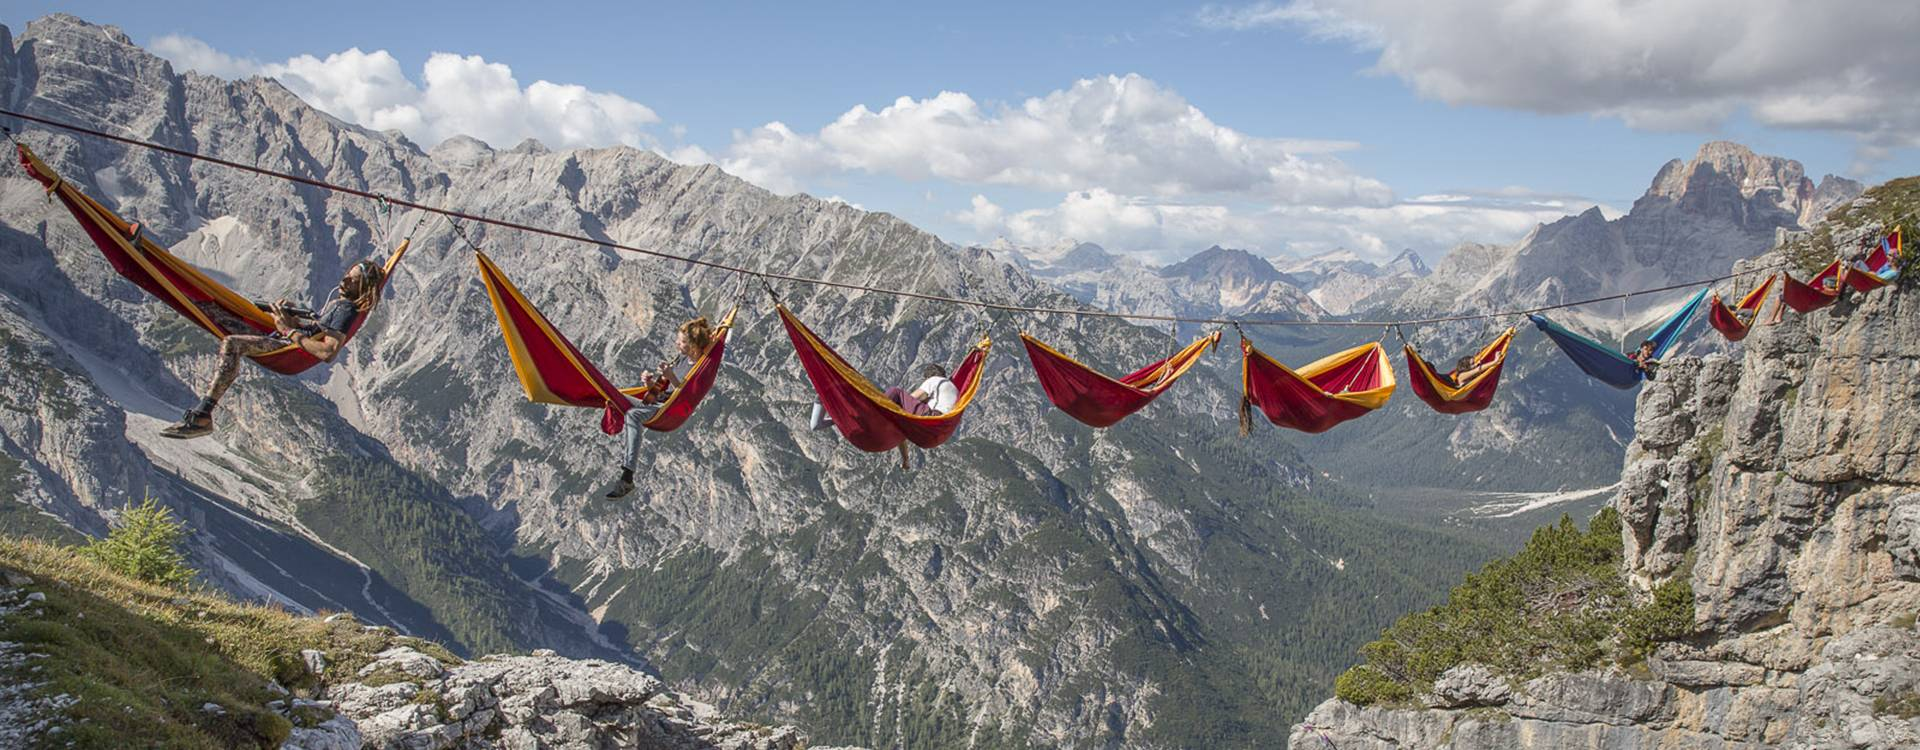 startpage-slideshow3-montepiana-hammock-wahlhuetter-web-4-ticket-to-the-moon-hammock-manufacturer-camping-sebastian-walhuetter